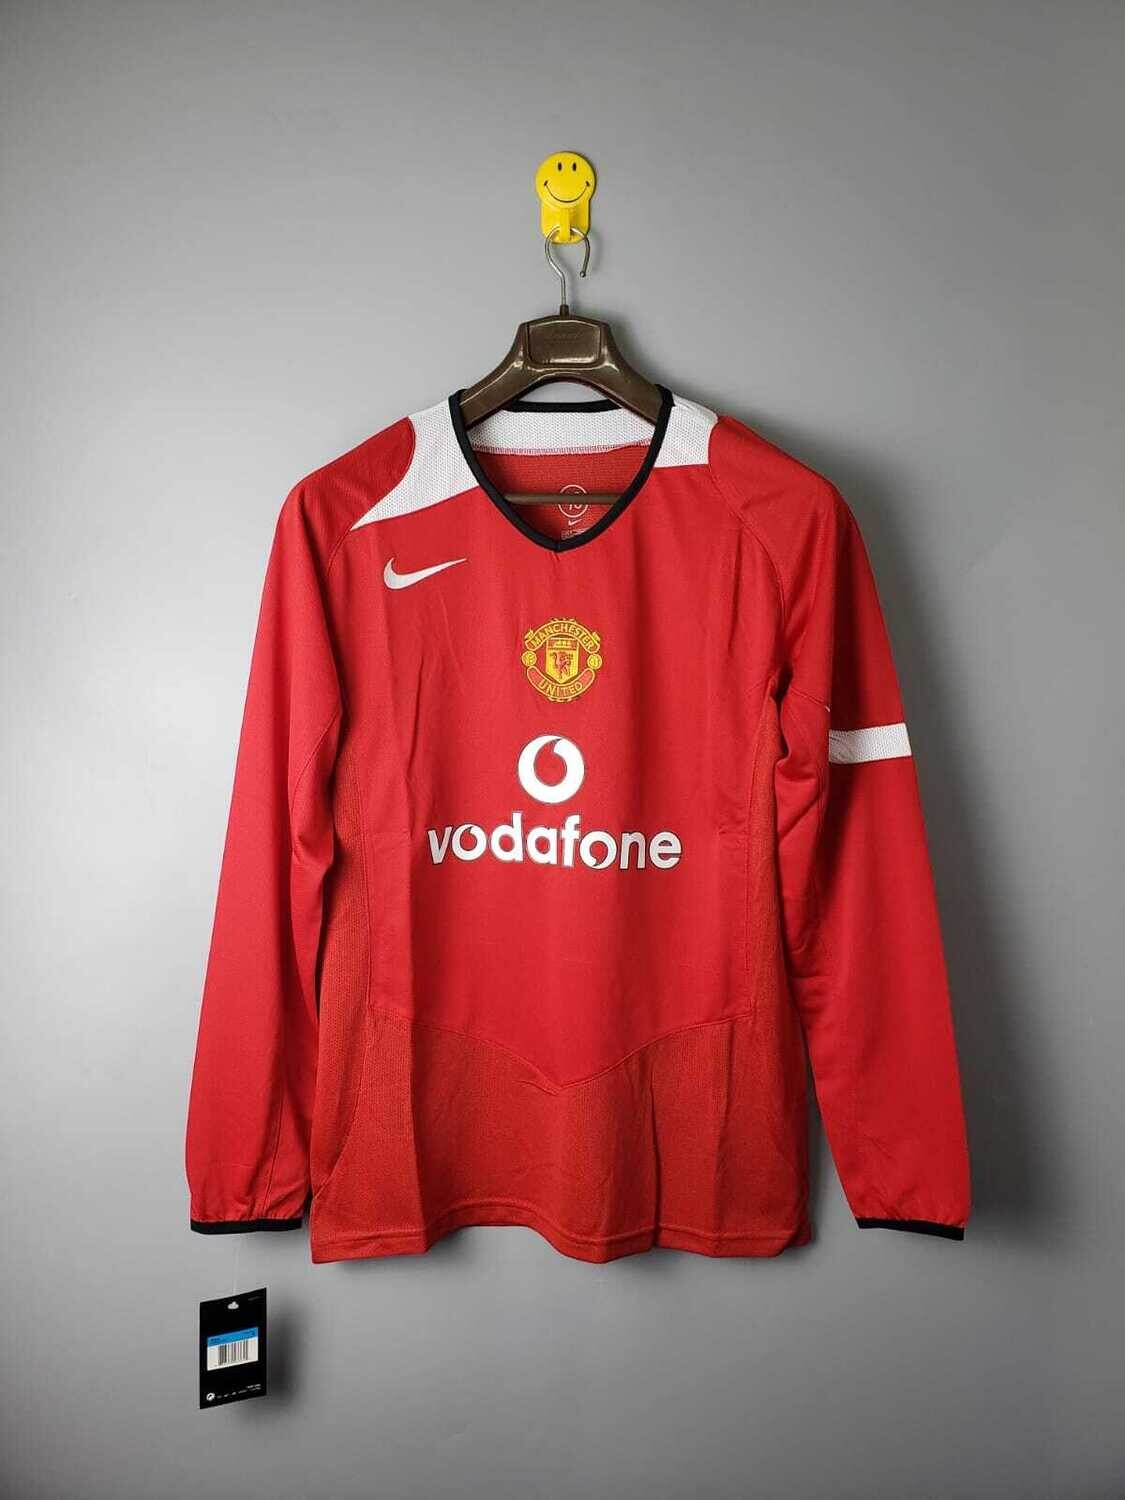 Manchester United 2004-06 Retro Home Full Sleeves Jersey [Pre-paid Only]